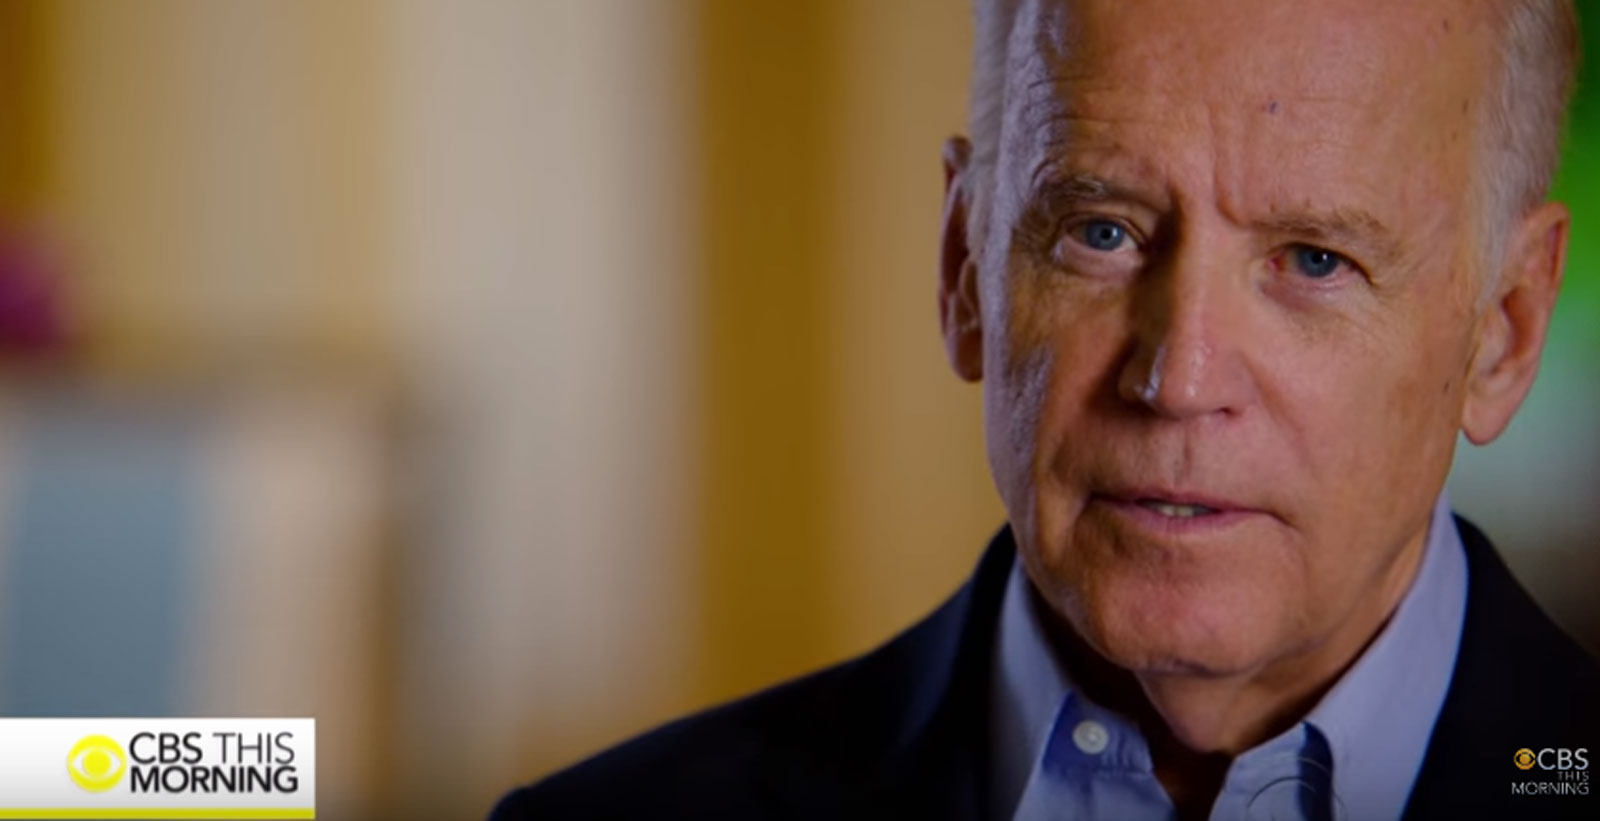 Biden's 'Note to Self': 'There is no quit in America' (Video)